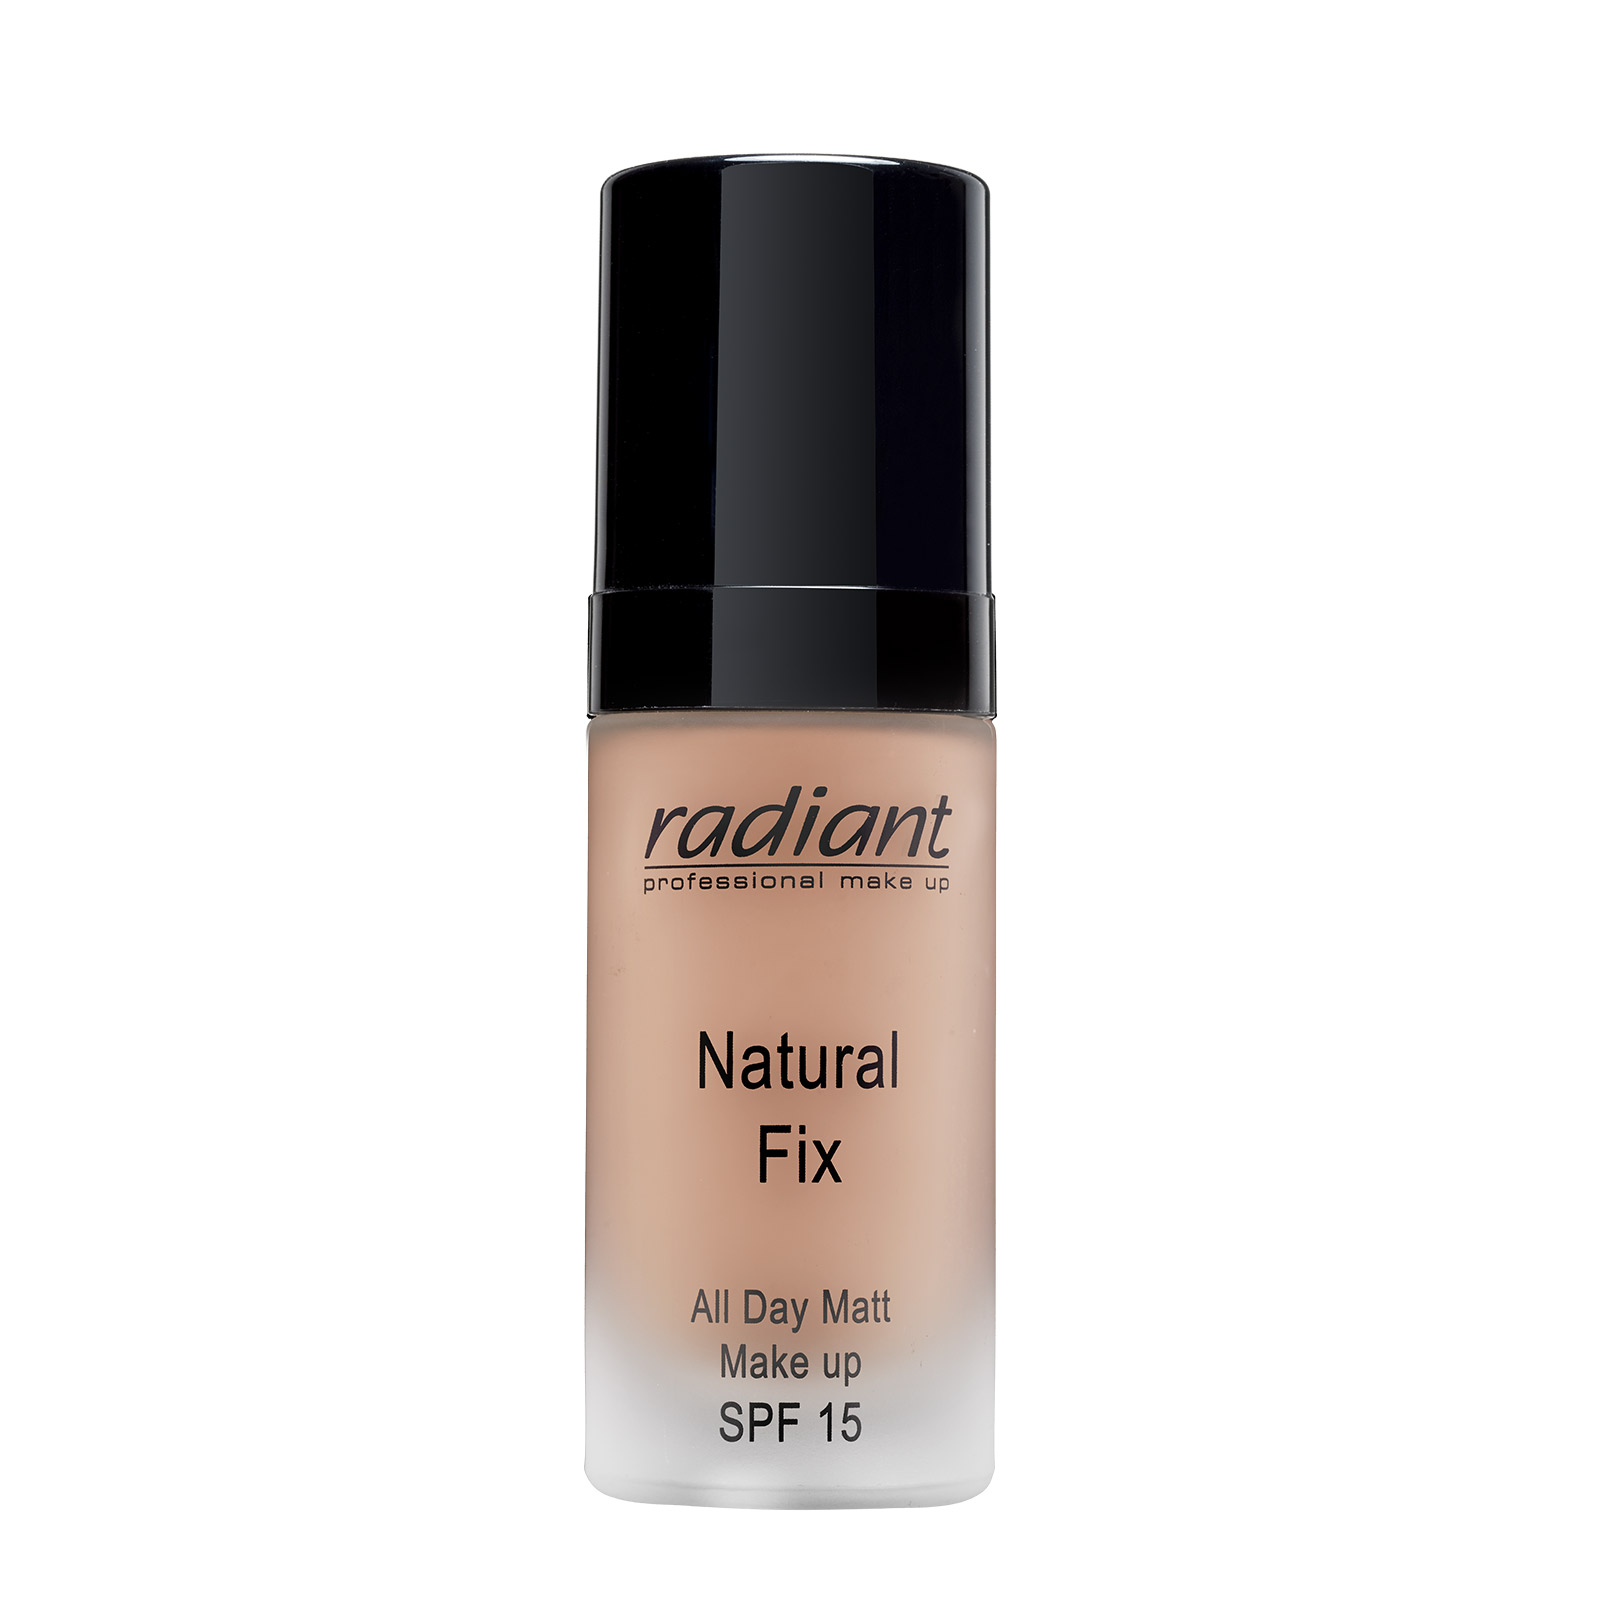 NATURAL FIX ALL DAY MATT MAKE UP SPF 15 (06 Tan)